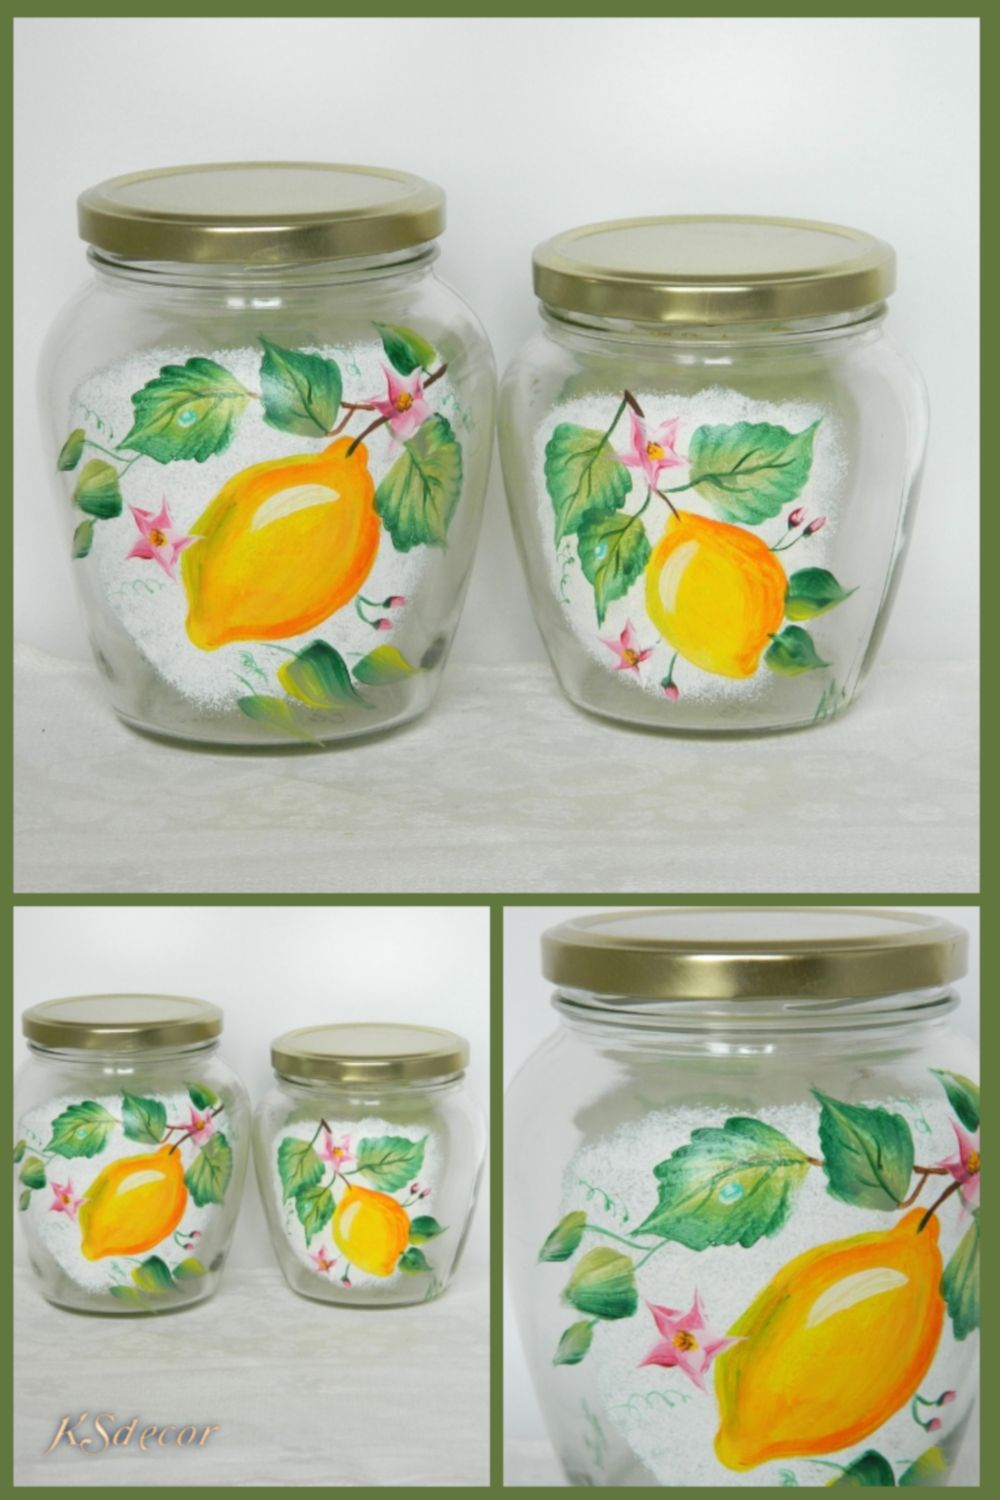 Hand Painted Glass Jars With Lid Jam Pot Kitchen Canister Set Etsy Painting Glass Jars Glass Jars With Lids Decorative Glass Jars